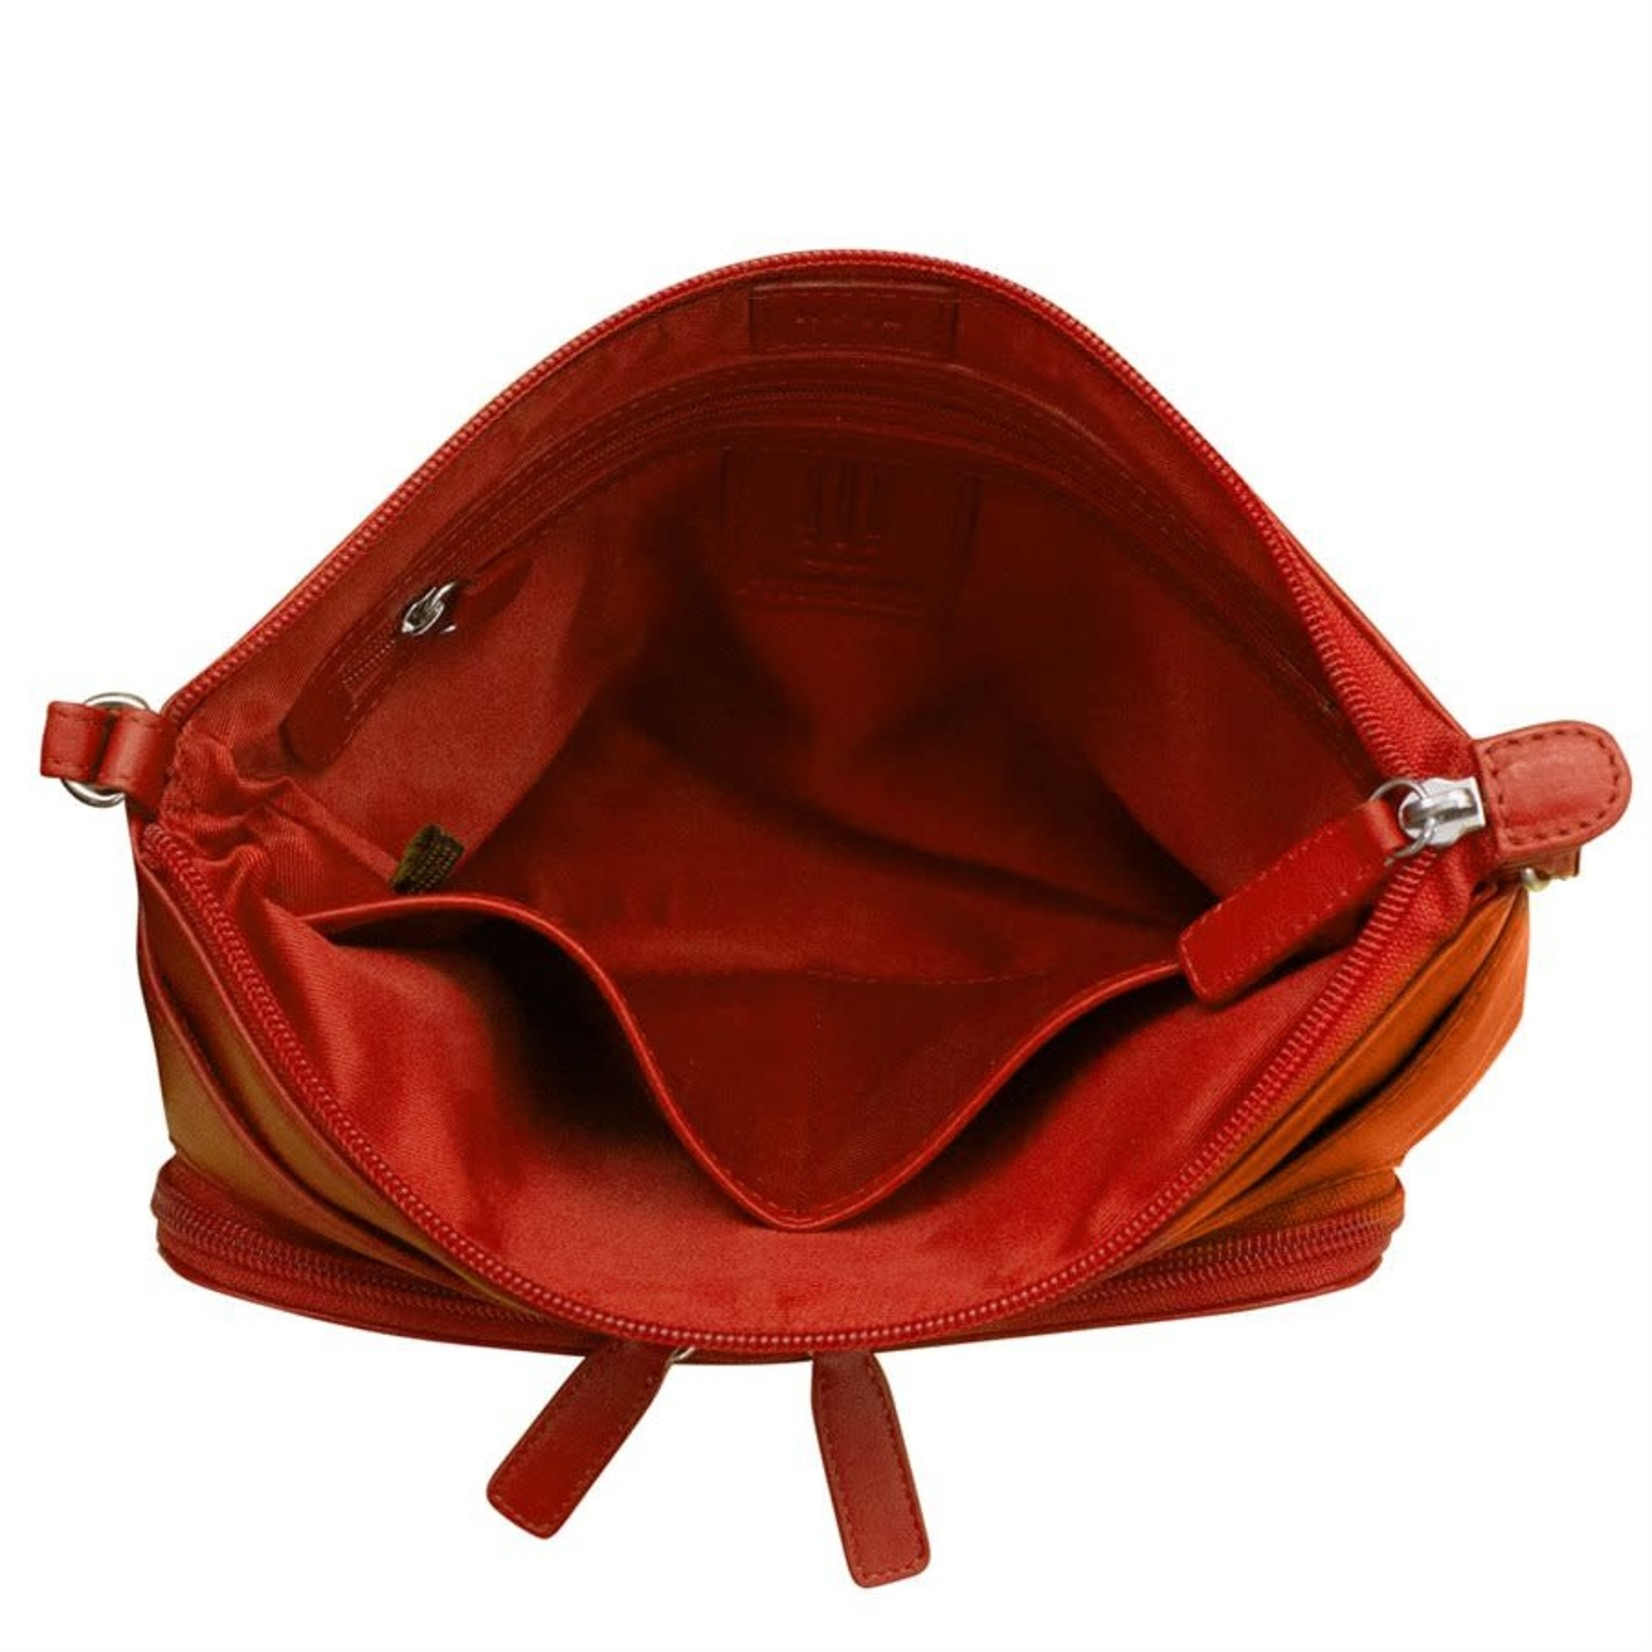 Leather Handbags and Accessories 6923 Red - The Traveler Crossbody